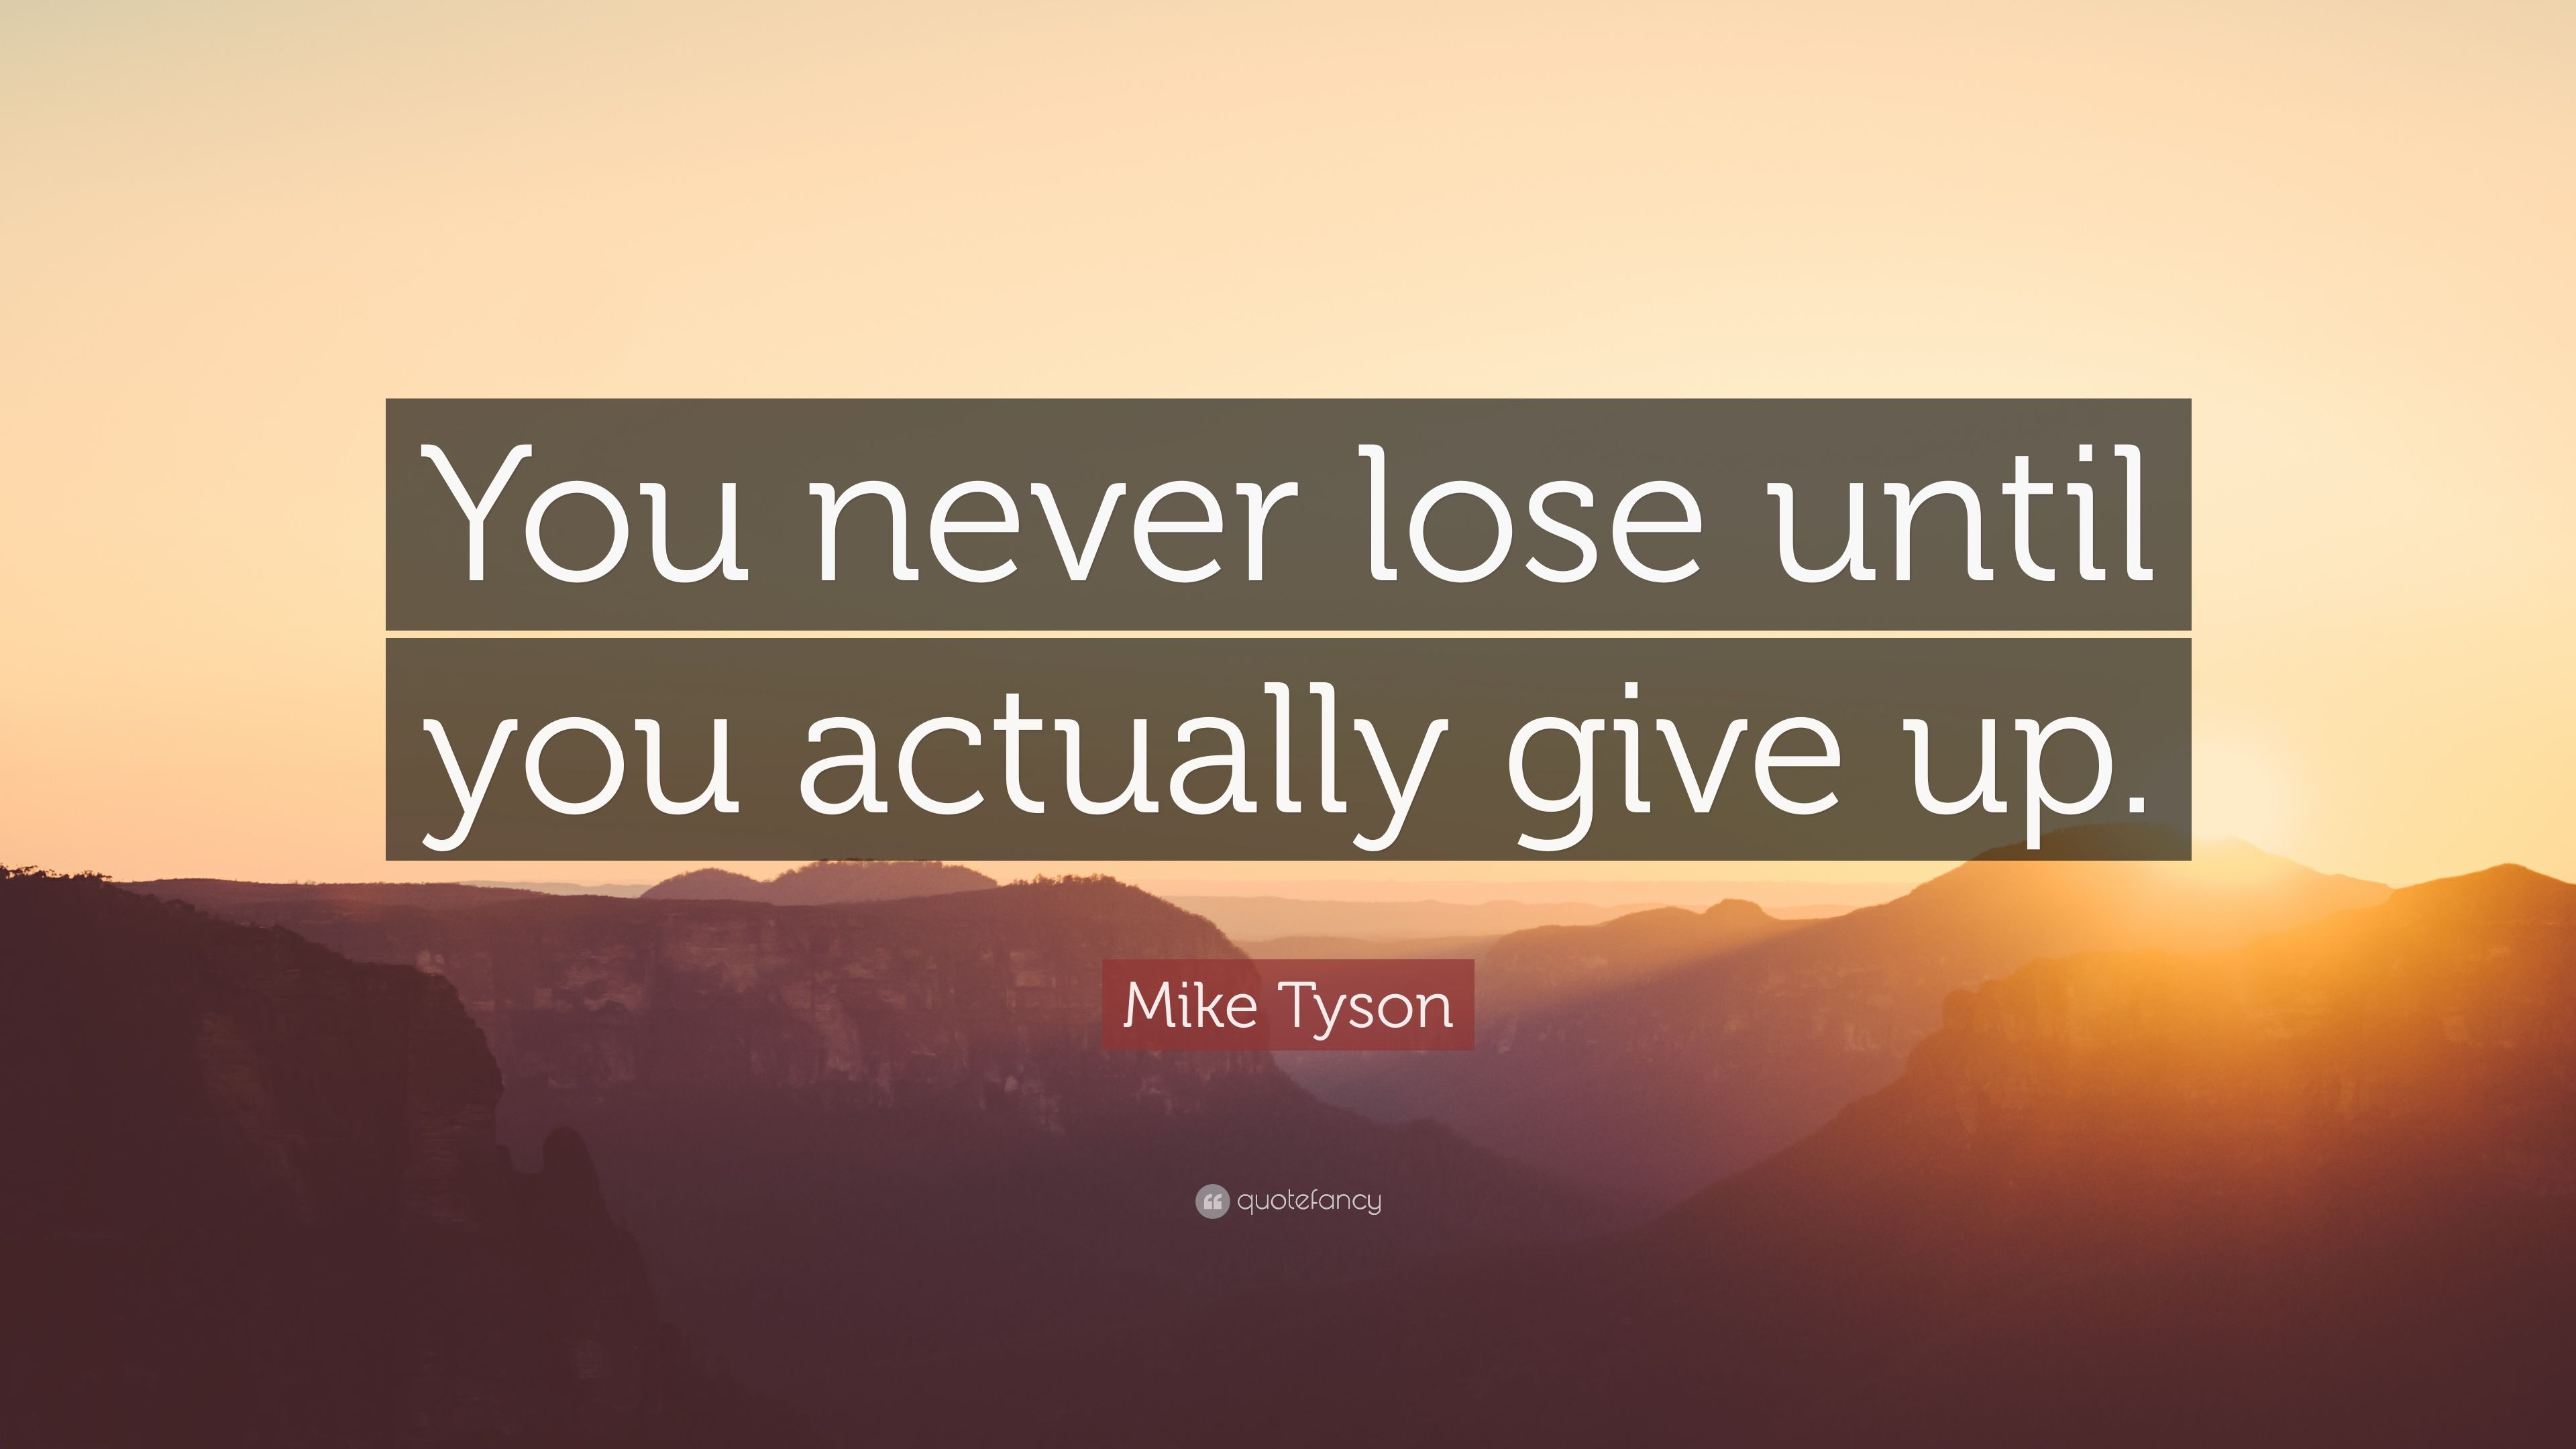 3840x2160 Mike Tyson Quotes (253 wallpapers) - Quotefancy